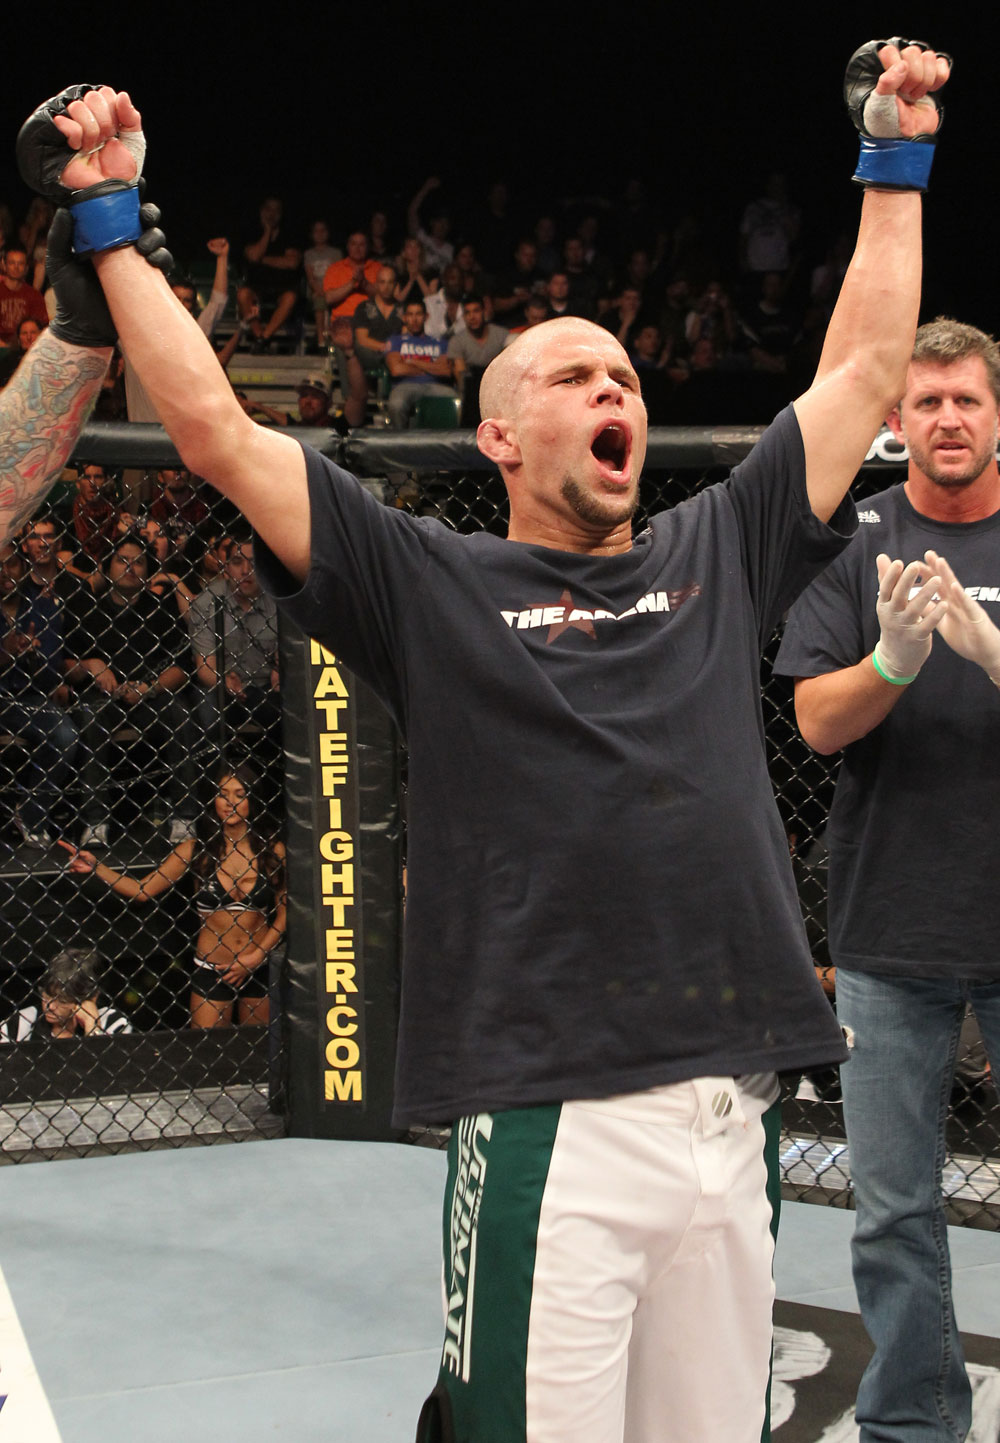 The Ultimate Fighter Season 13 Finale: Chris Cope celebrates his win